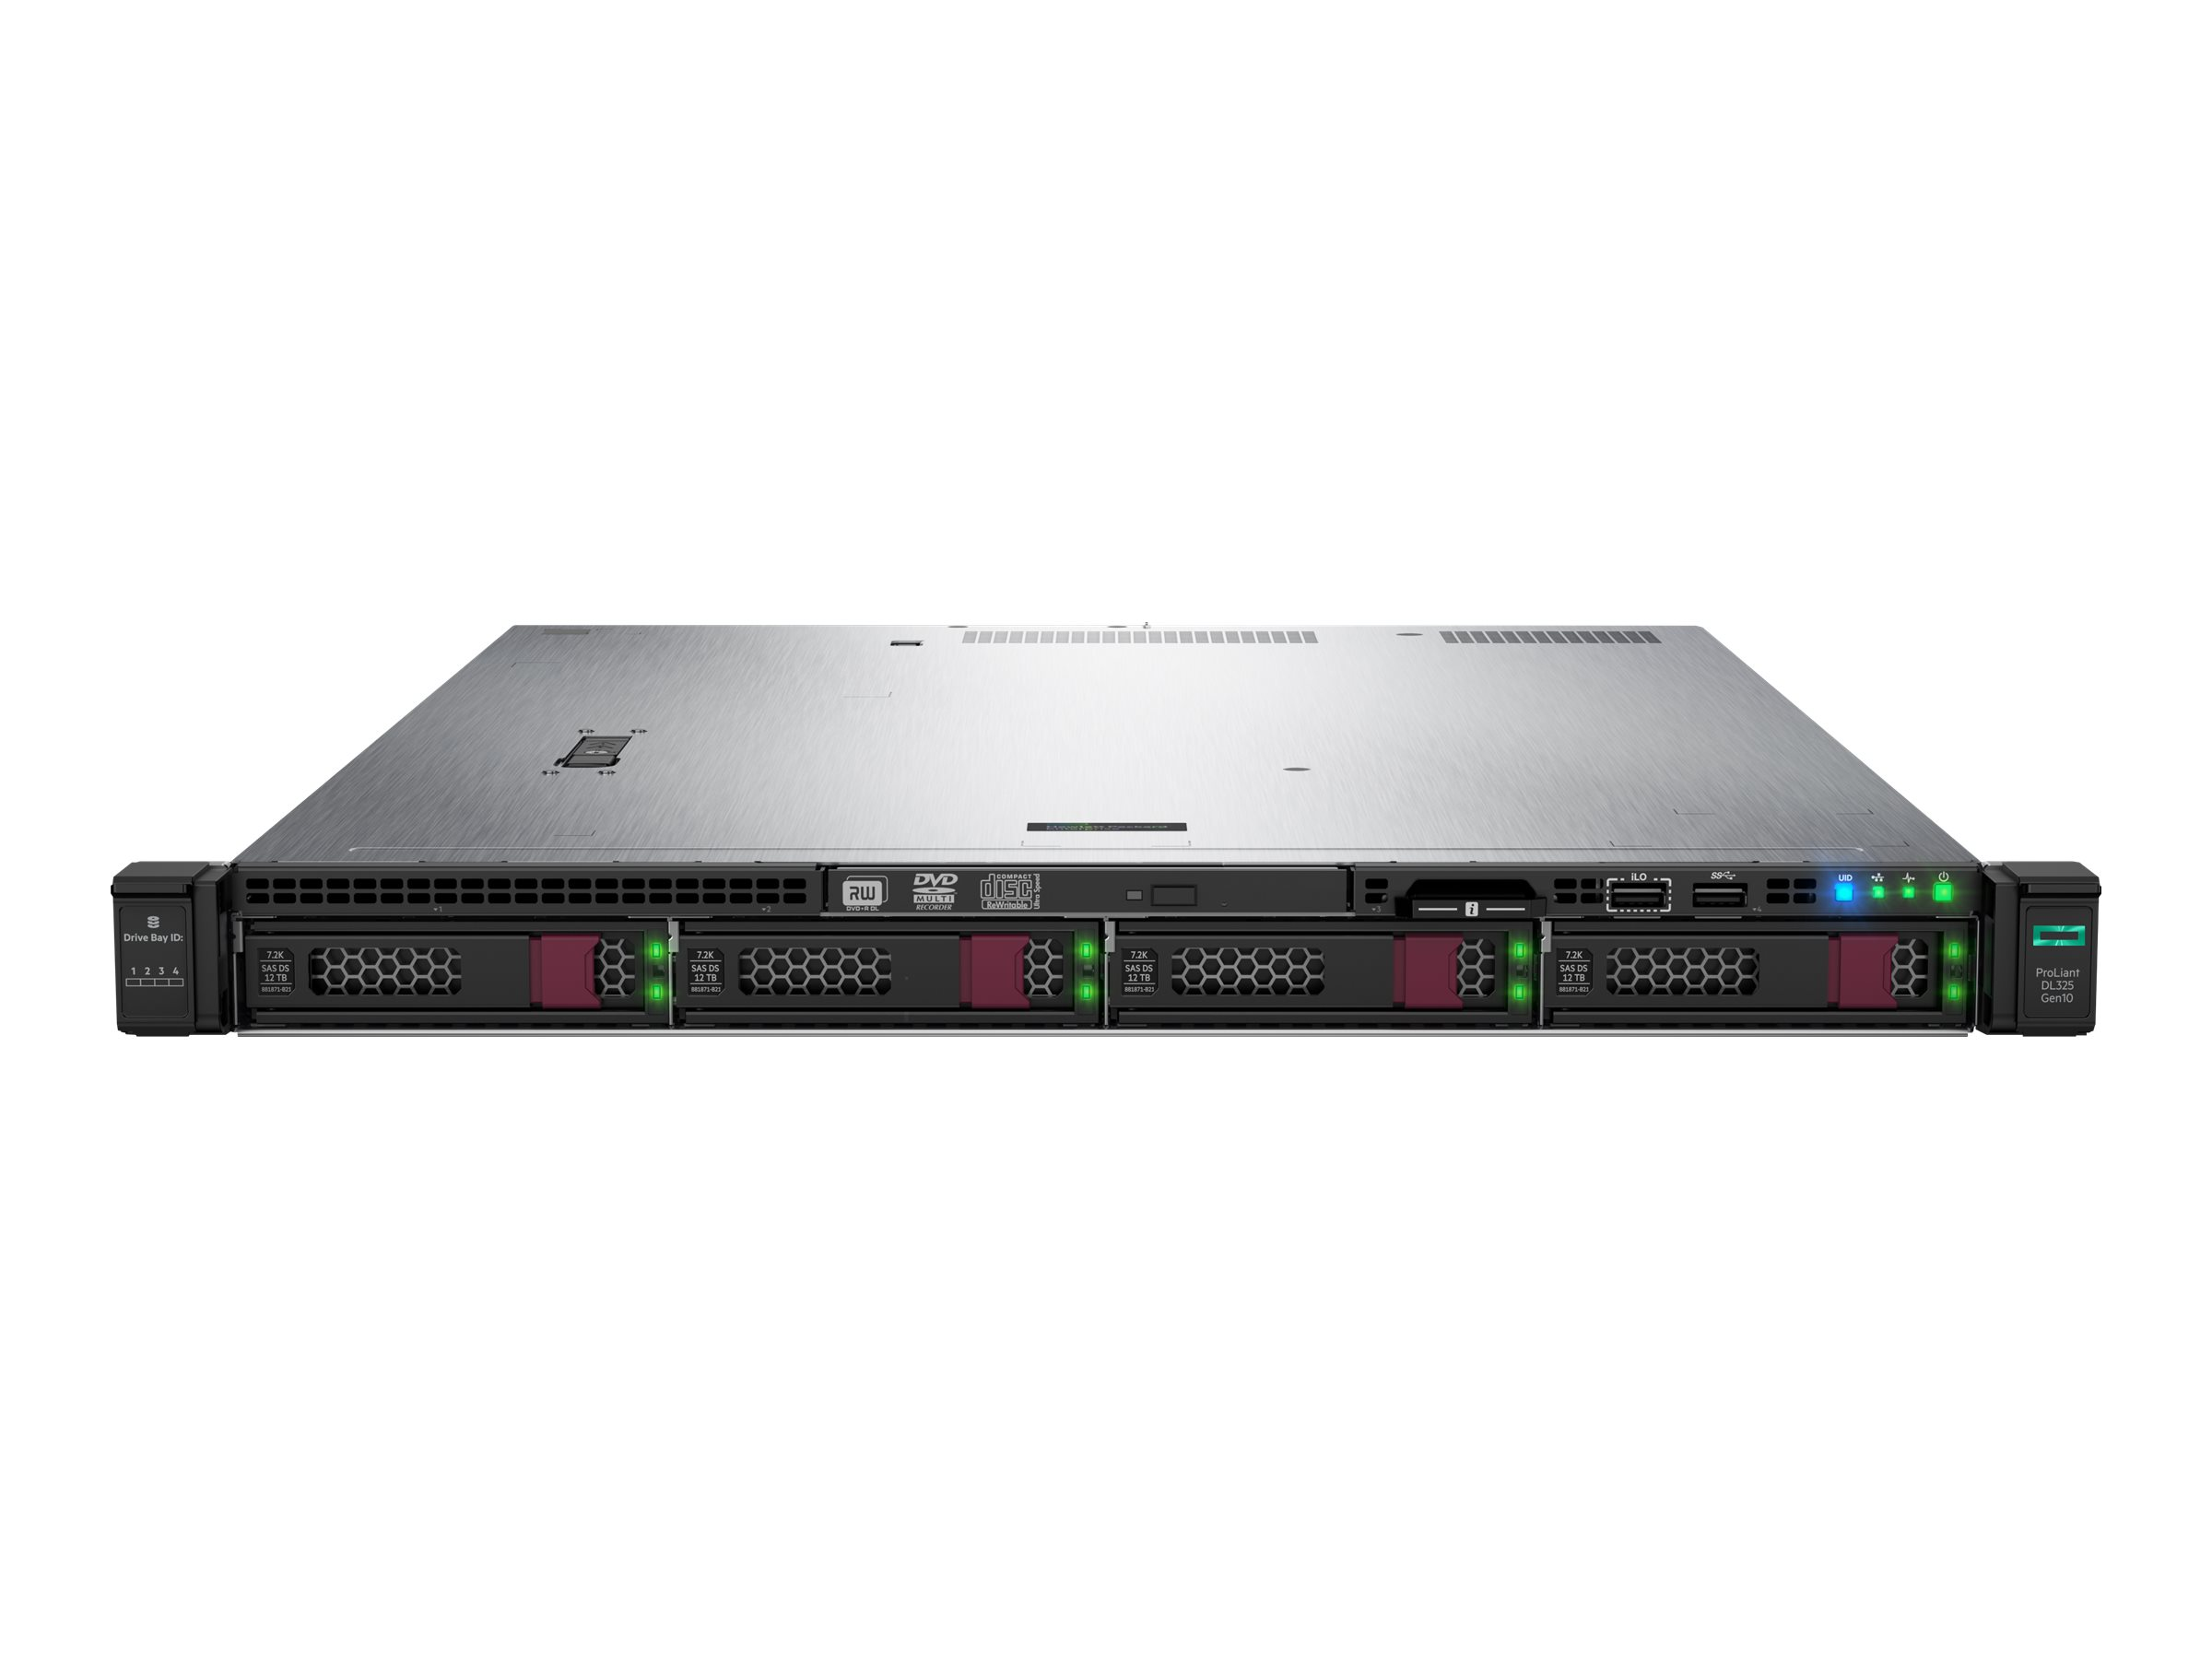 HPE ProLiant DL325 Gen10 Entry - rack-mountable - EPYC 7251 2.1 GHz - 8 GB - no HDD